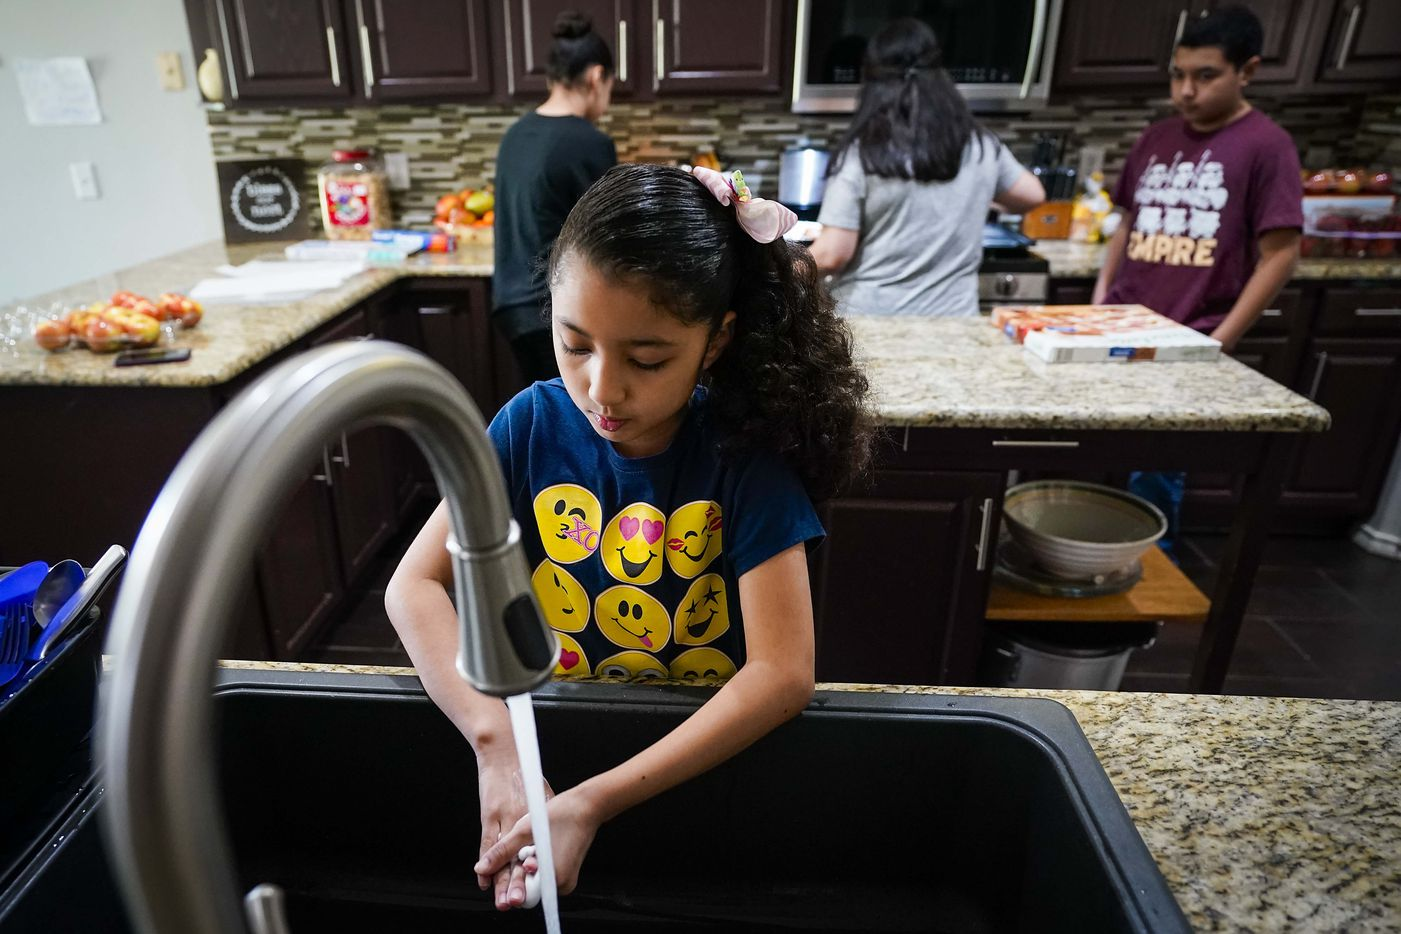 "Selena Cabrera, 9, washes her hands as her mother Nancy Segovia-Cabrera (background center), serves pizza for her brother Francisco (right) and sister Karla at lunch time at the family's home in Grand Prairie. The Cabrera family, like many around North Texas, suddenly has four youngsters at home with mom acting as ""principal"" making sure they all complete assignments as their school turns to distance learning in response to the new coronavirus."